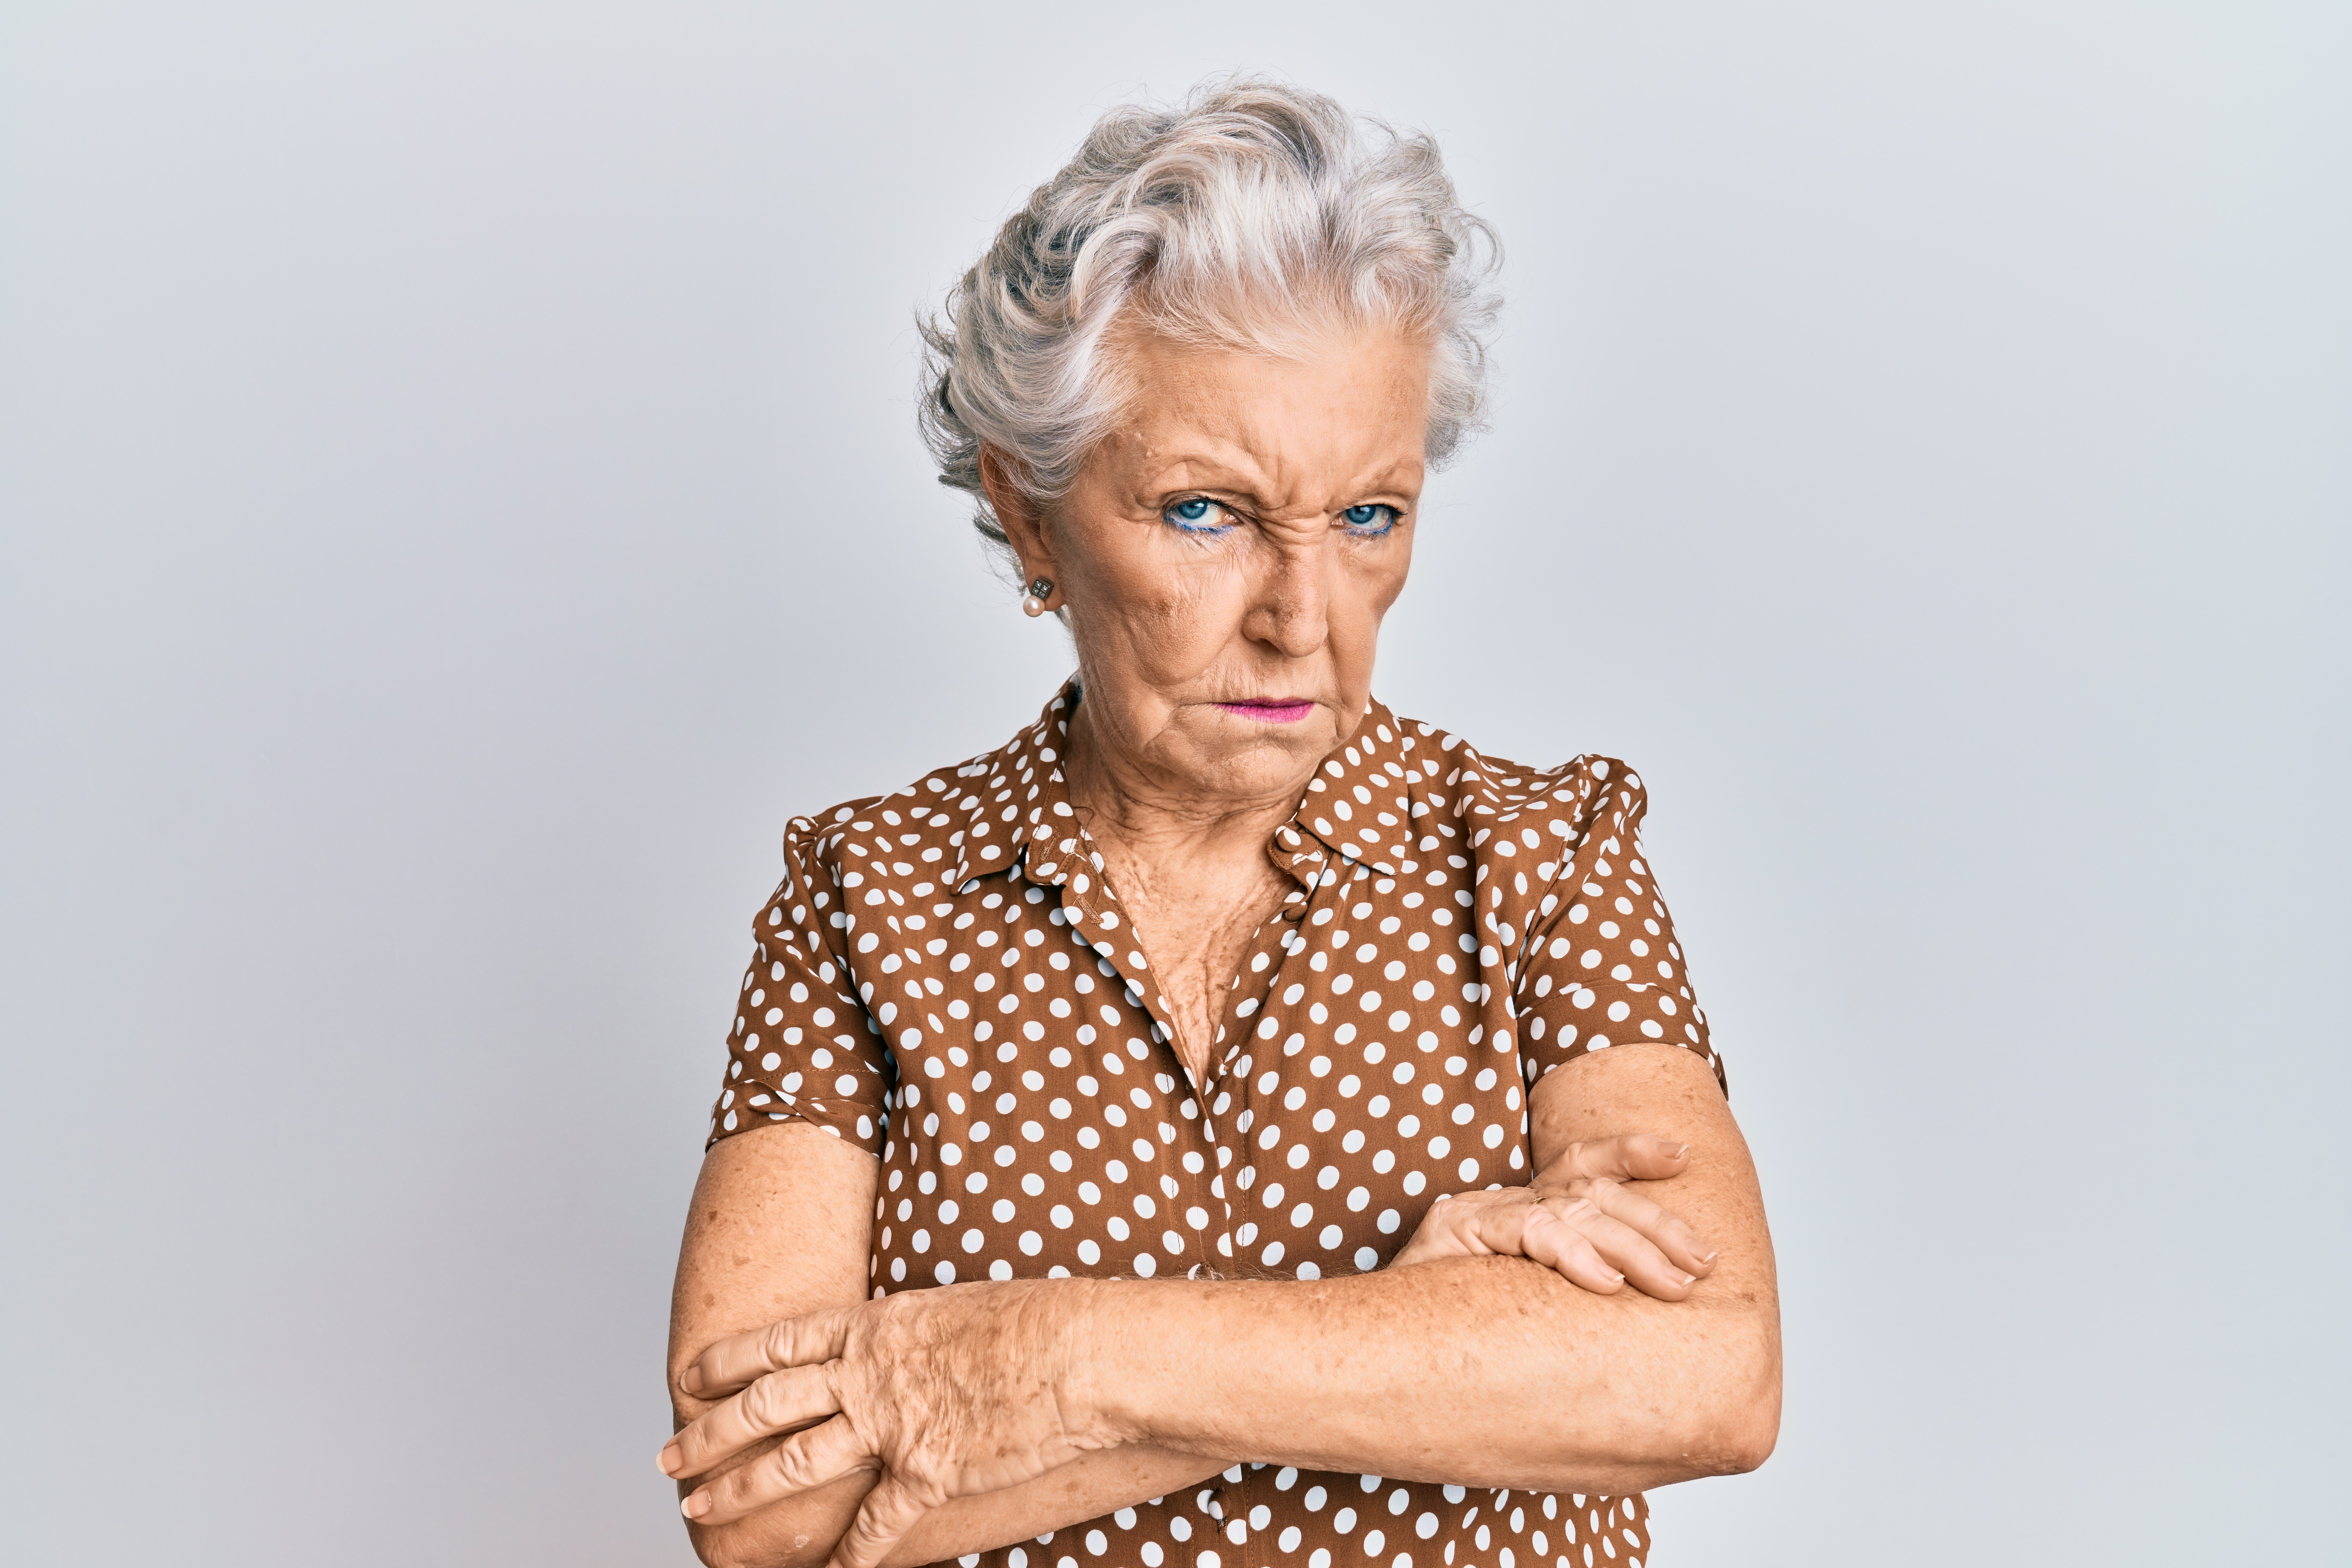 An elderly woman with a disapproving stare.   Source: Shutterstock